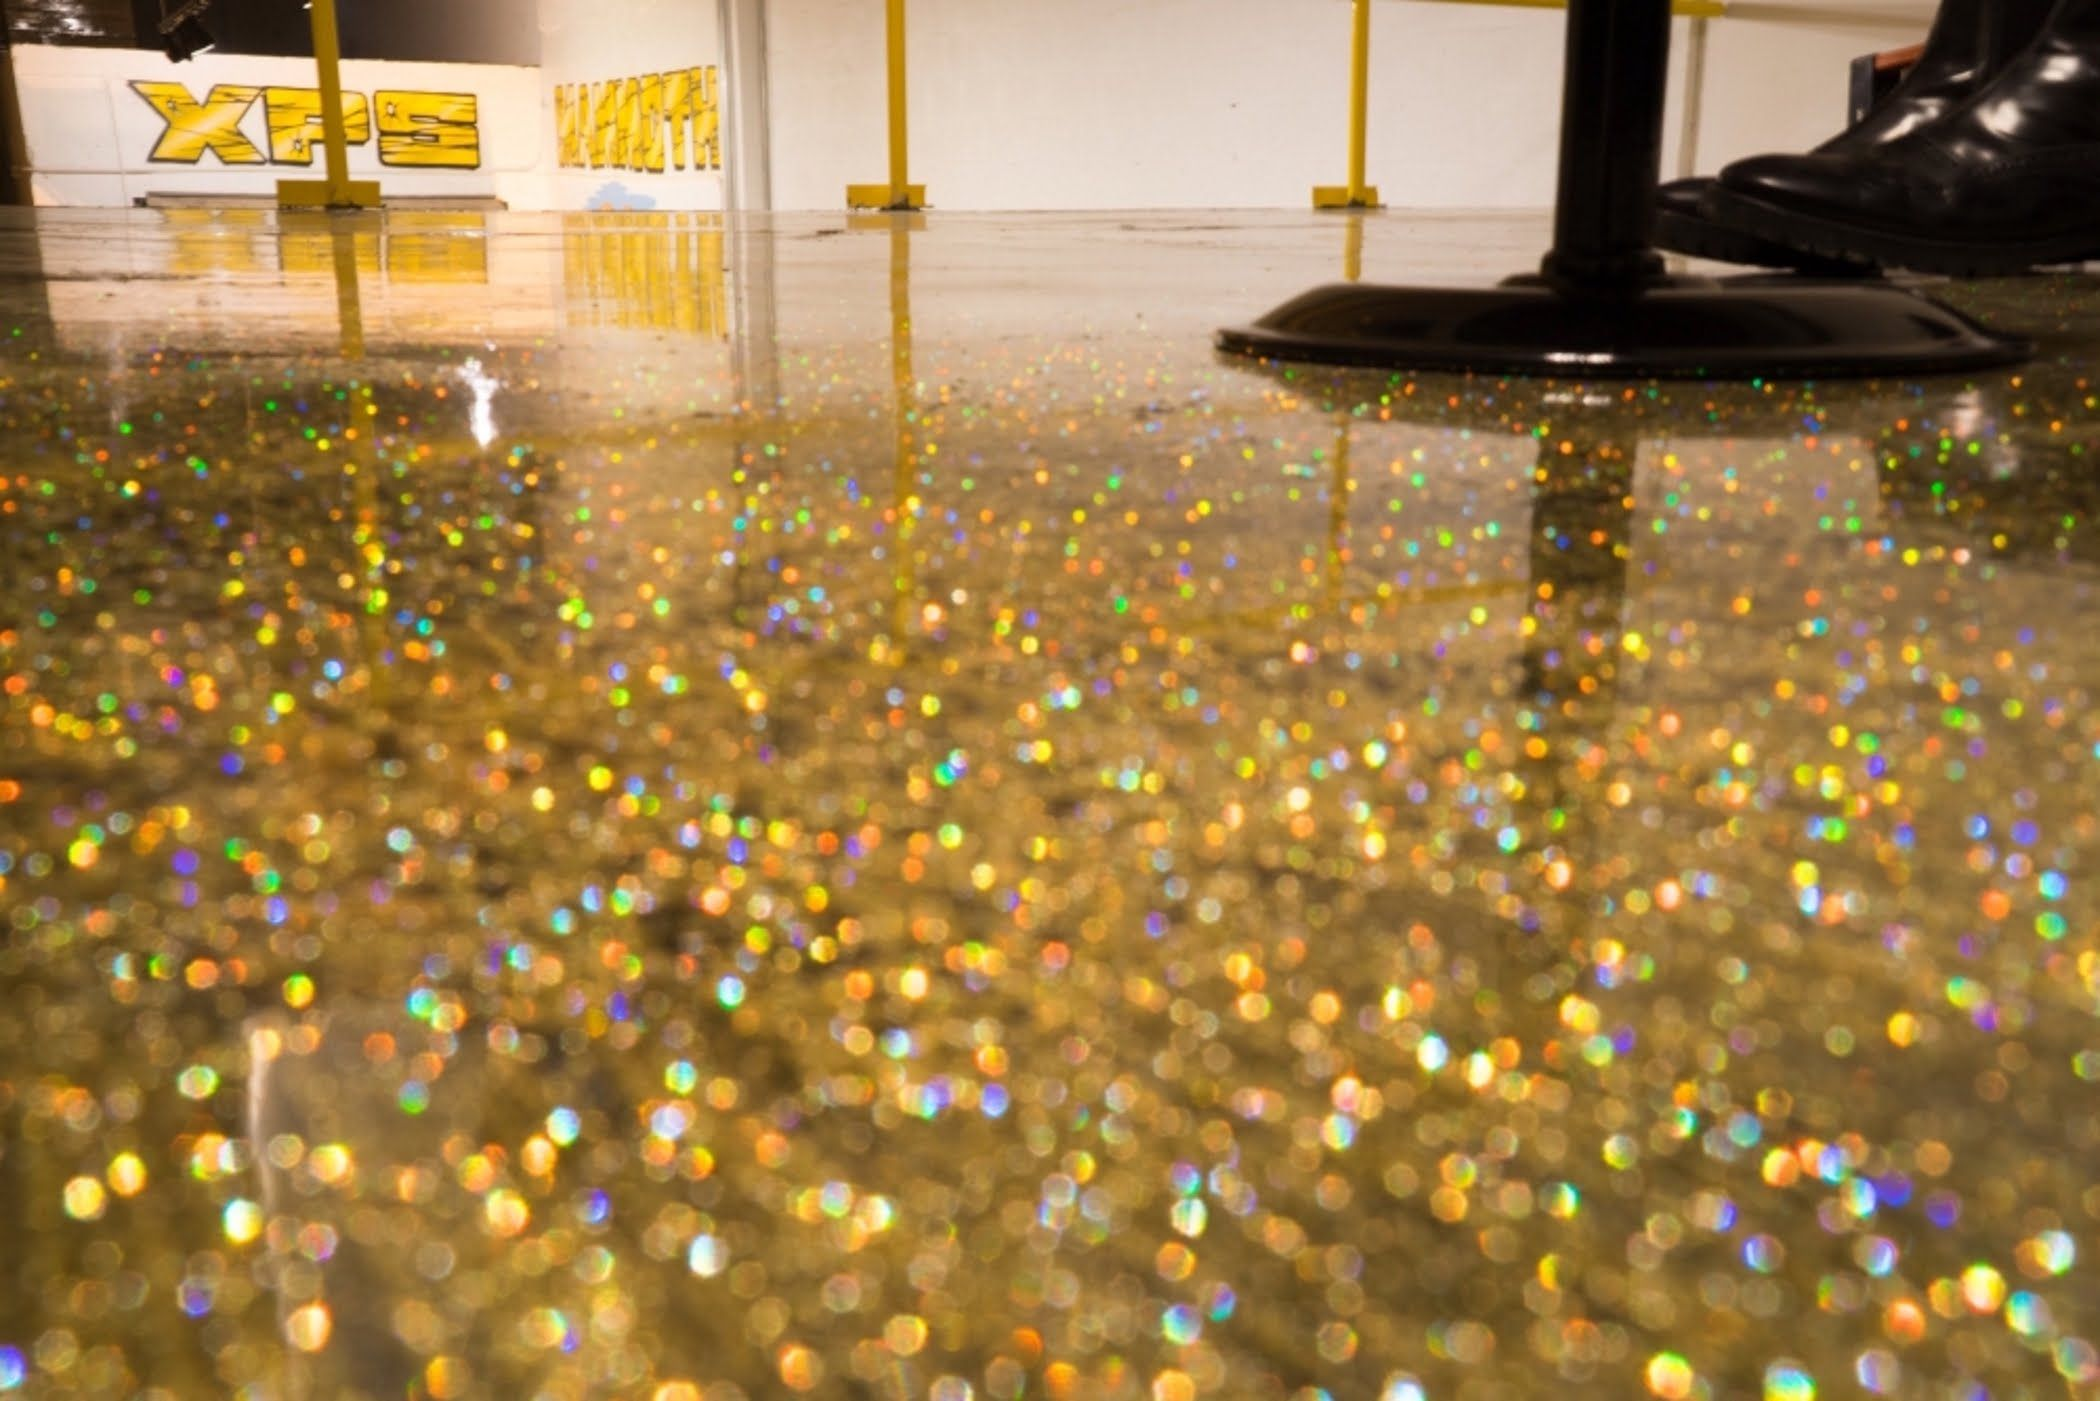 How To Do A Metallic Epoxy Floor Gold Glitter Start To Finish Metallic Epoxy Floor Glitter Floor Epoxy Floor